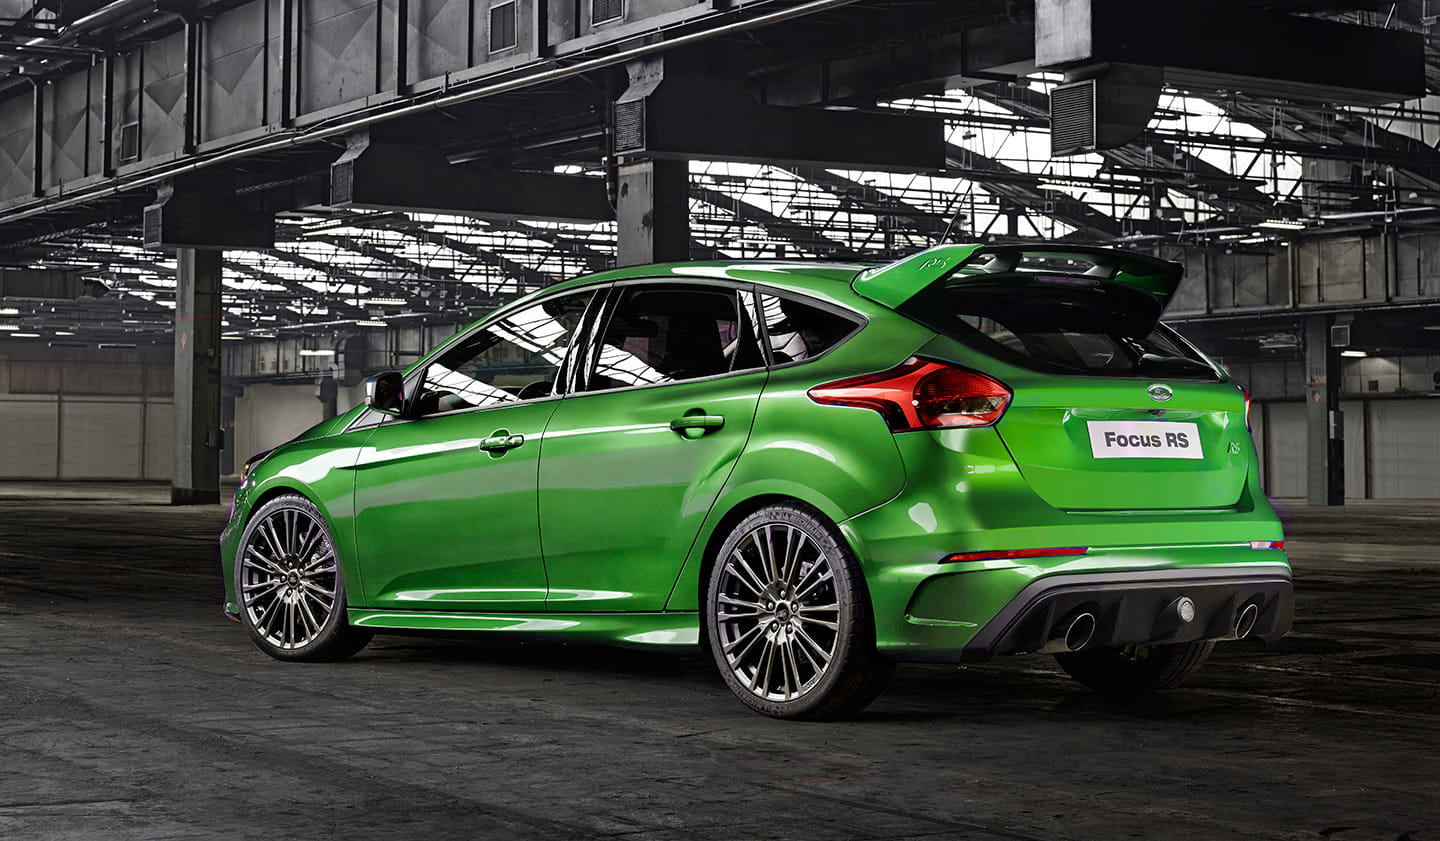 l stima el ford focus rs 2015 luce apabullante en verde pero ford no ofrecer este tono. Black Bedroom Furniture Sets. Home Design Ideas